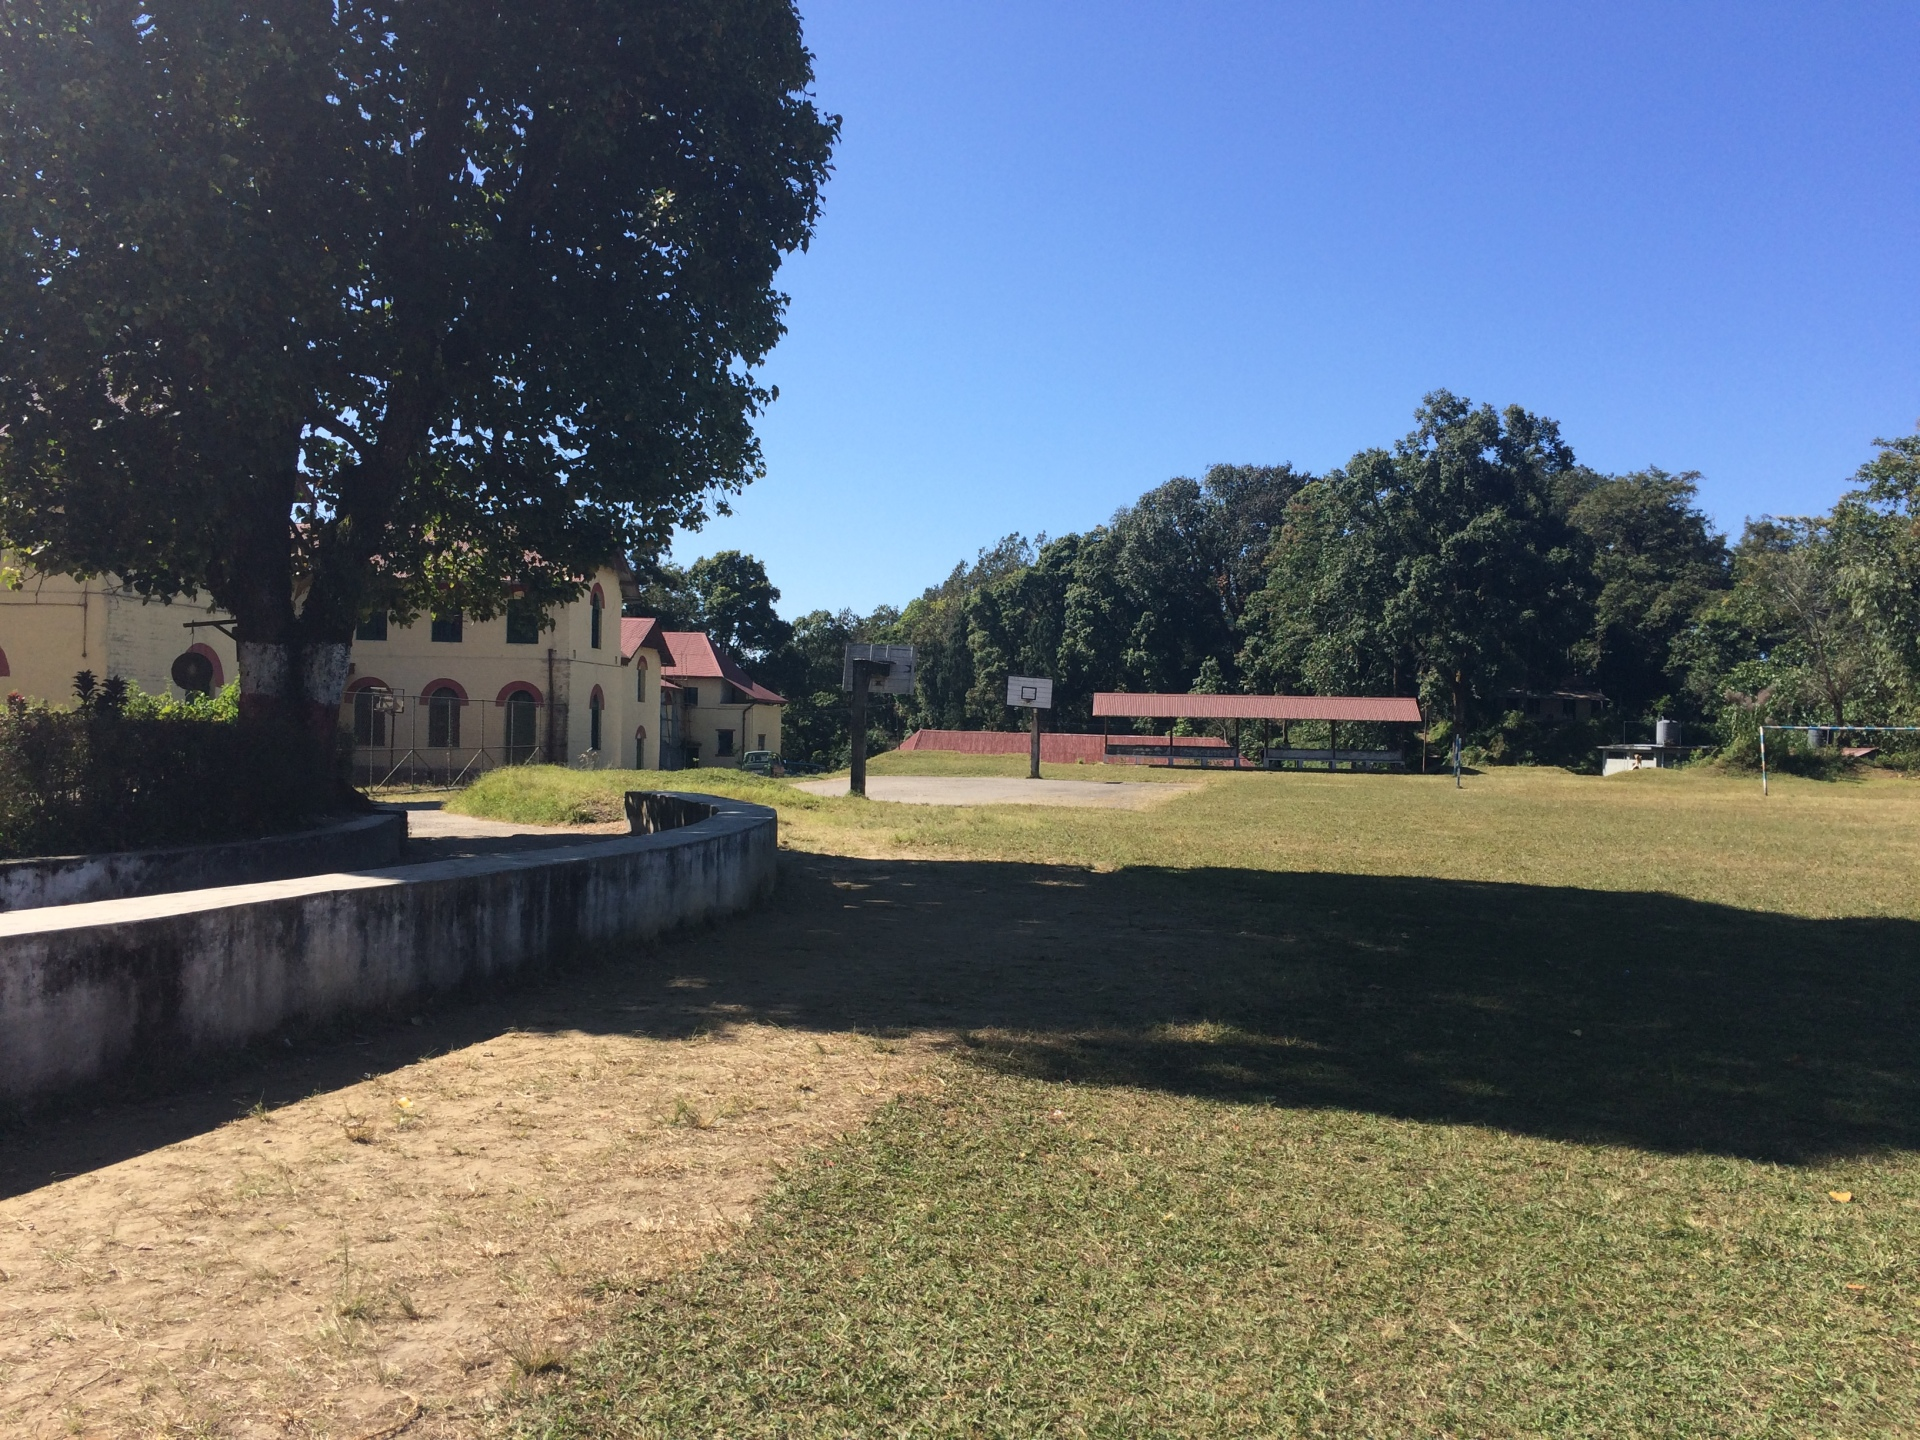 2017: The campus at Dr Graham's Homes school, Kalimpong